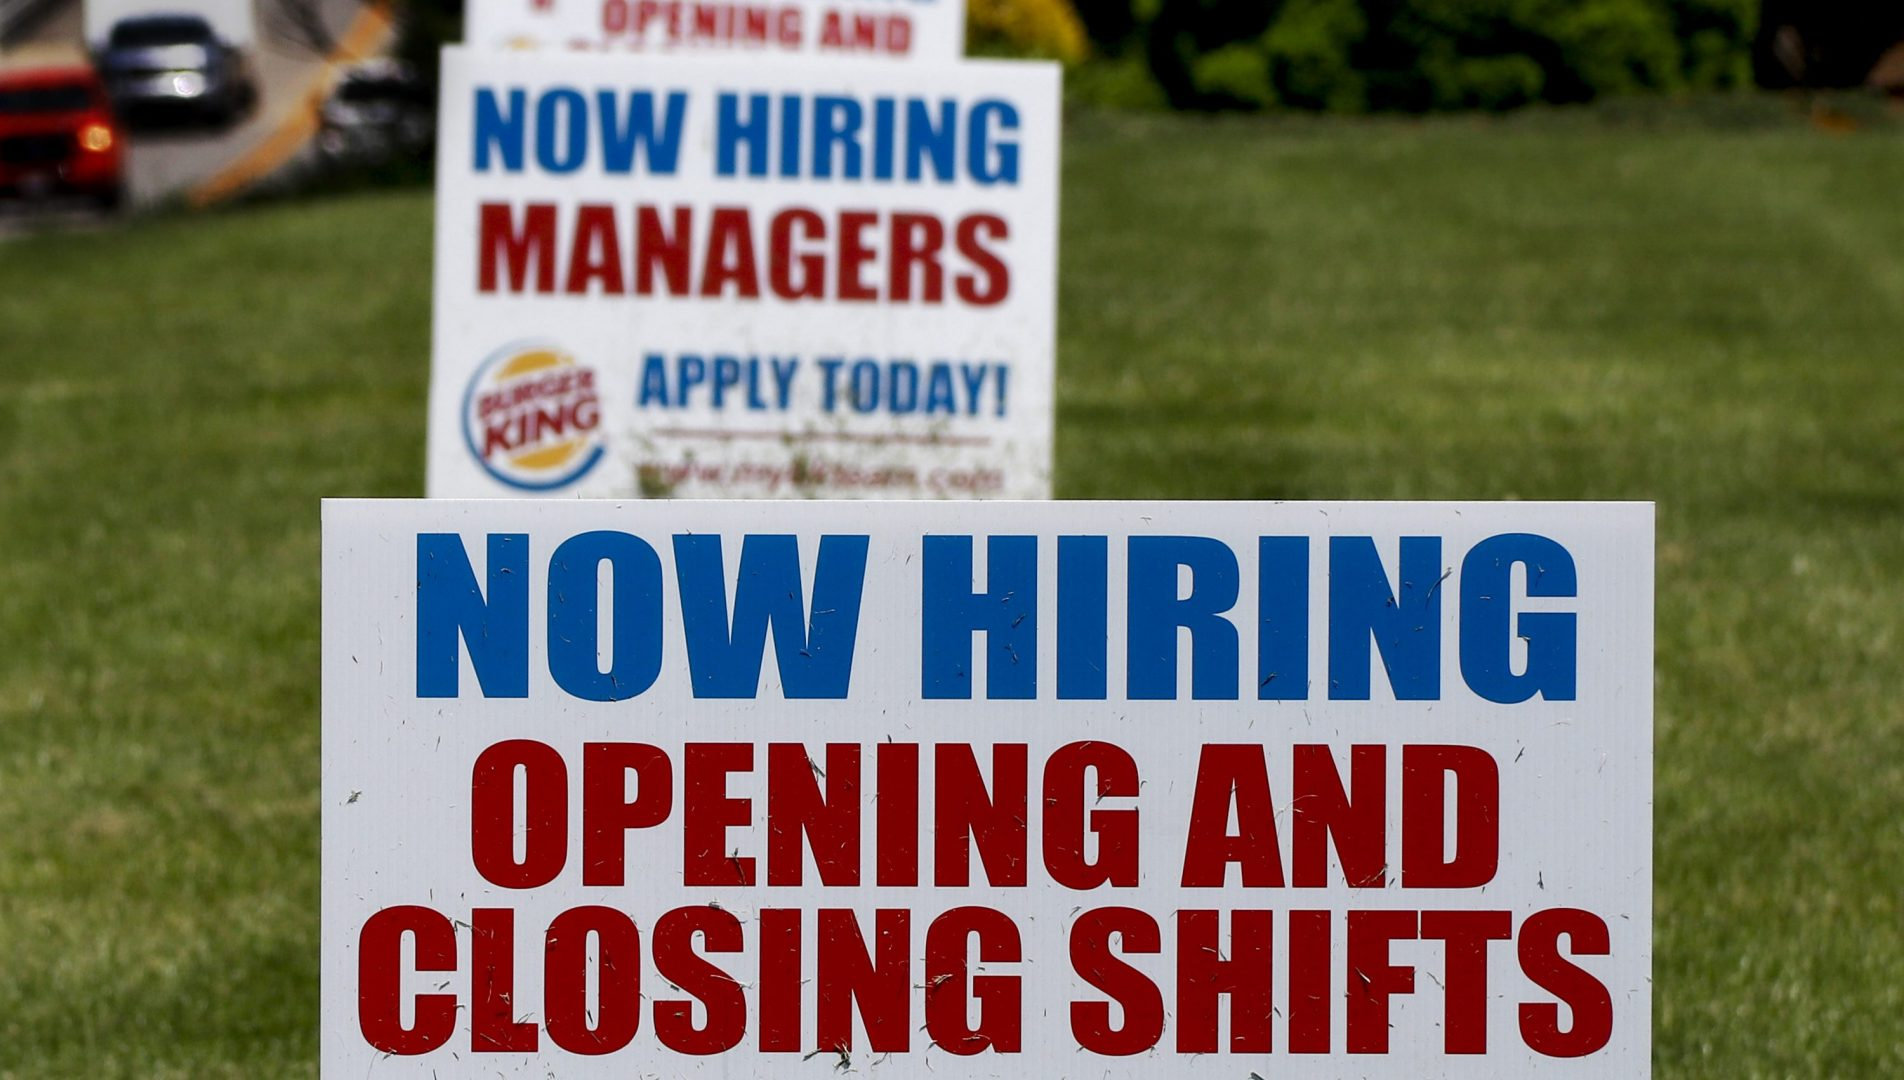 Pennsylvania jobless rate hits 15.1% as payrolls collapse | WITF